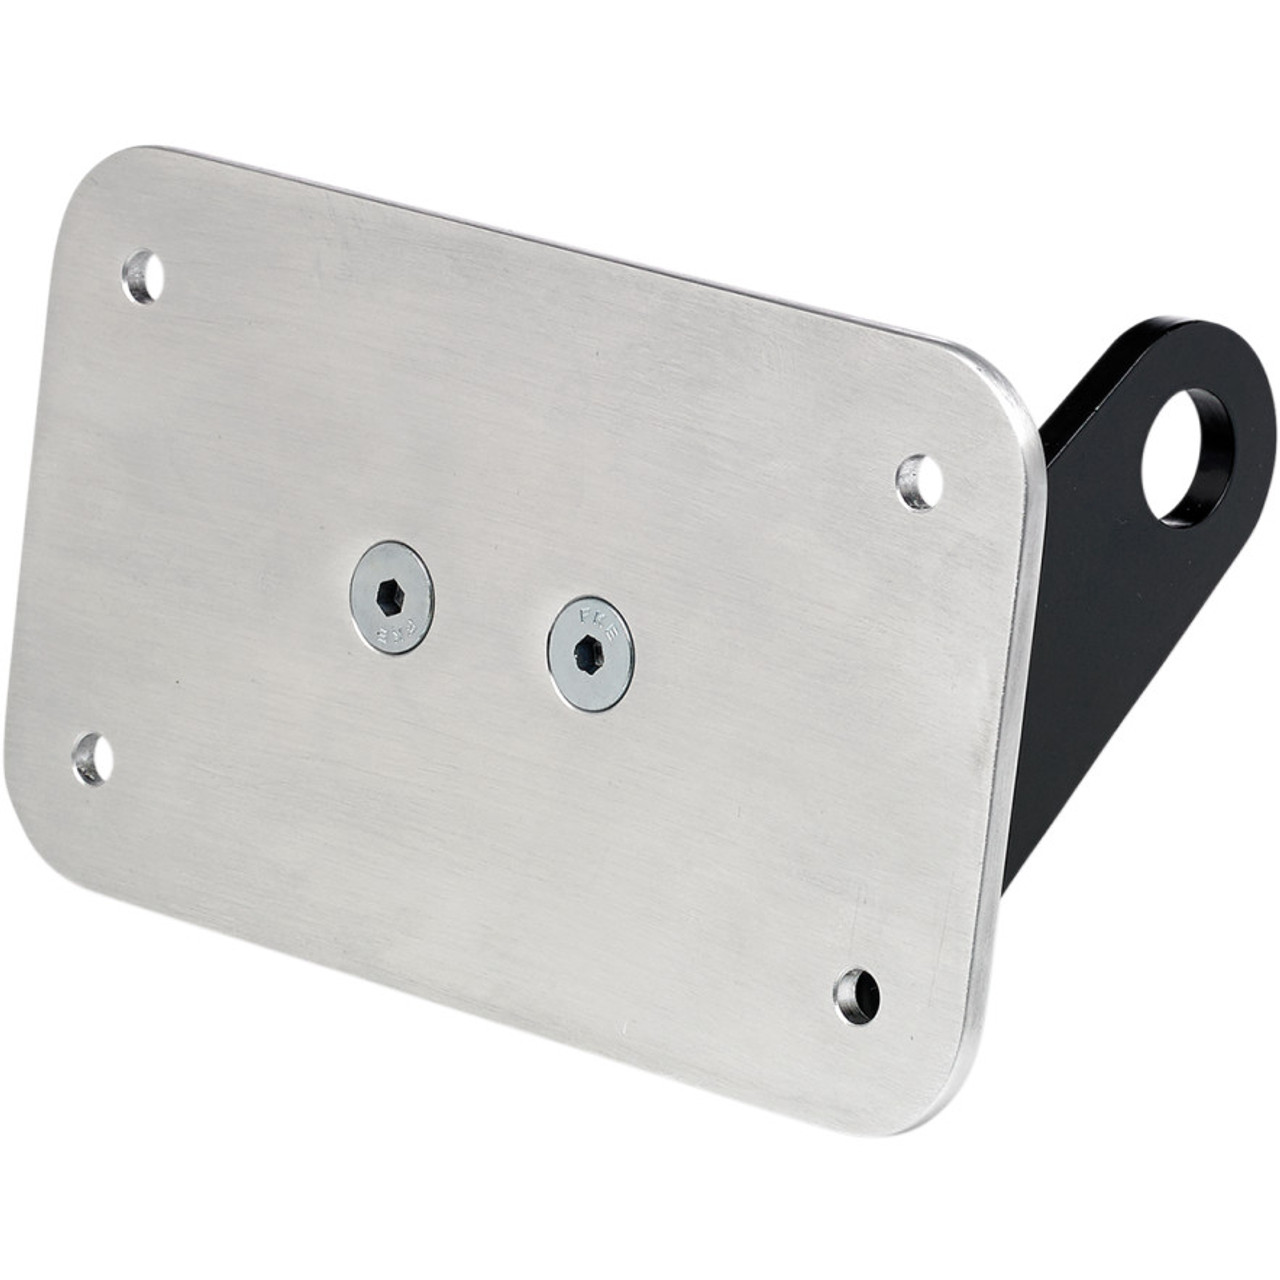 Gasbox Axle Mount License Plate Bracket for 3/4